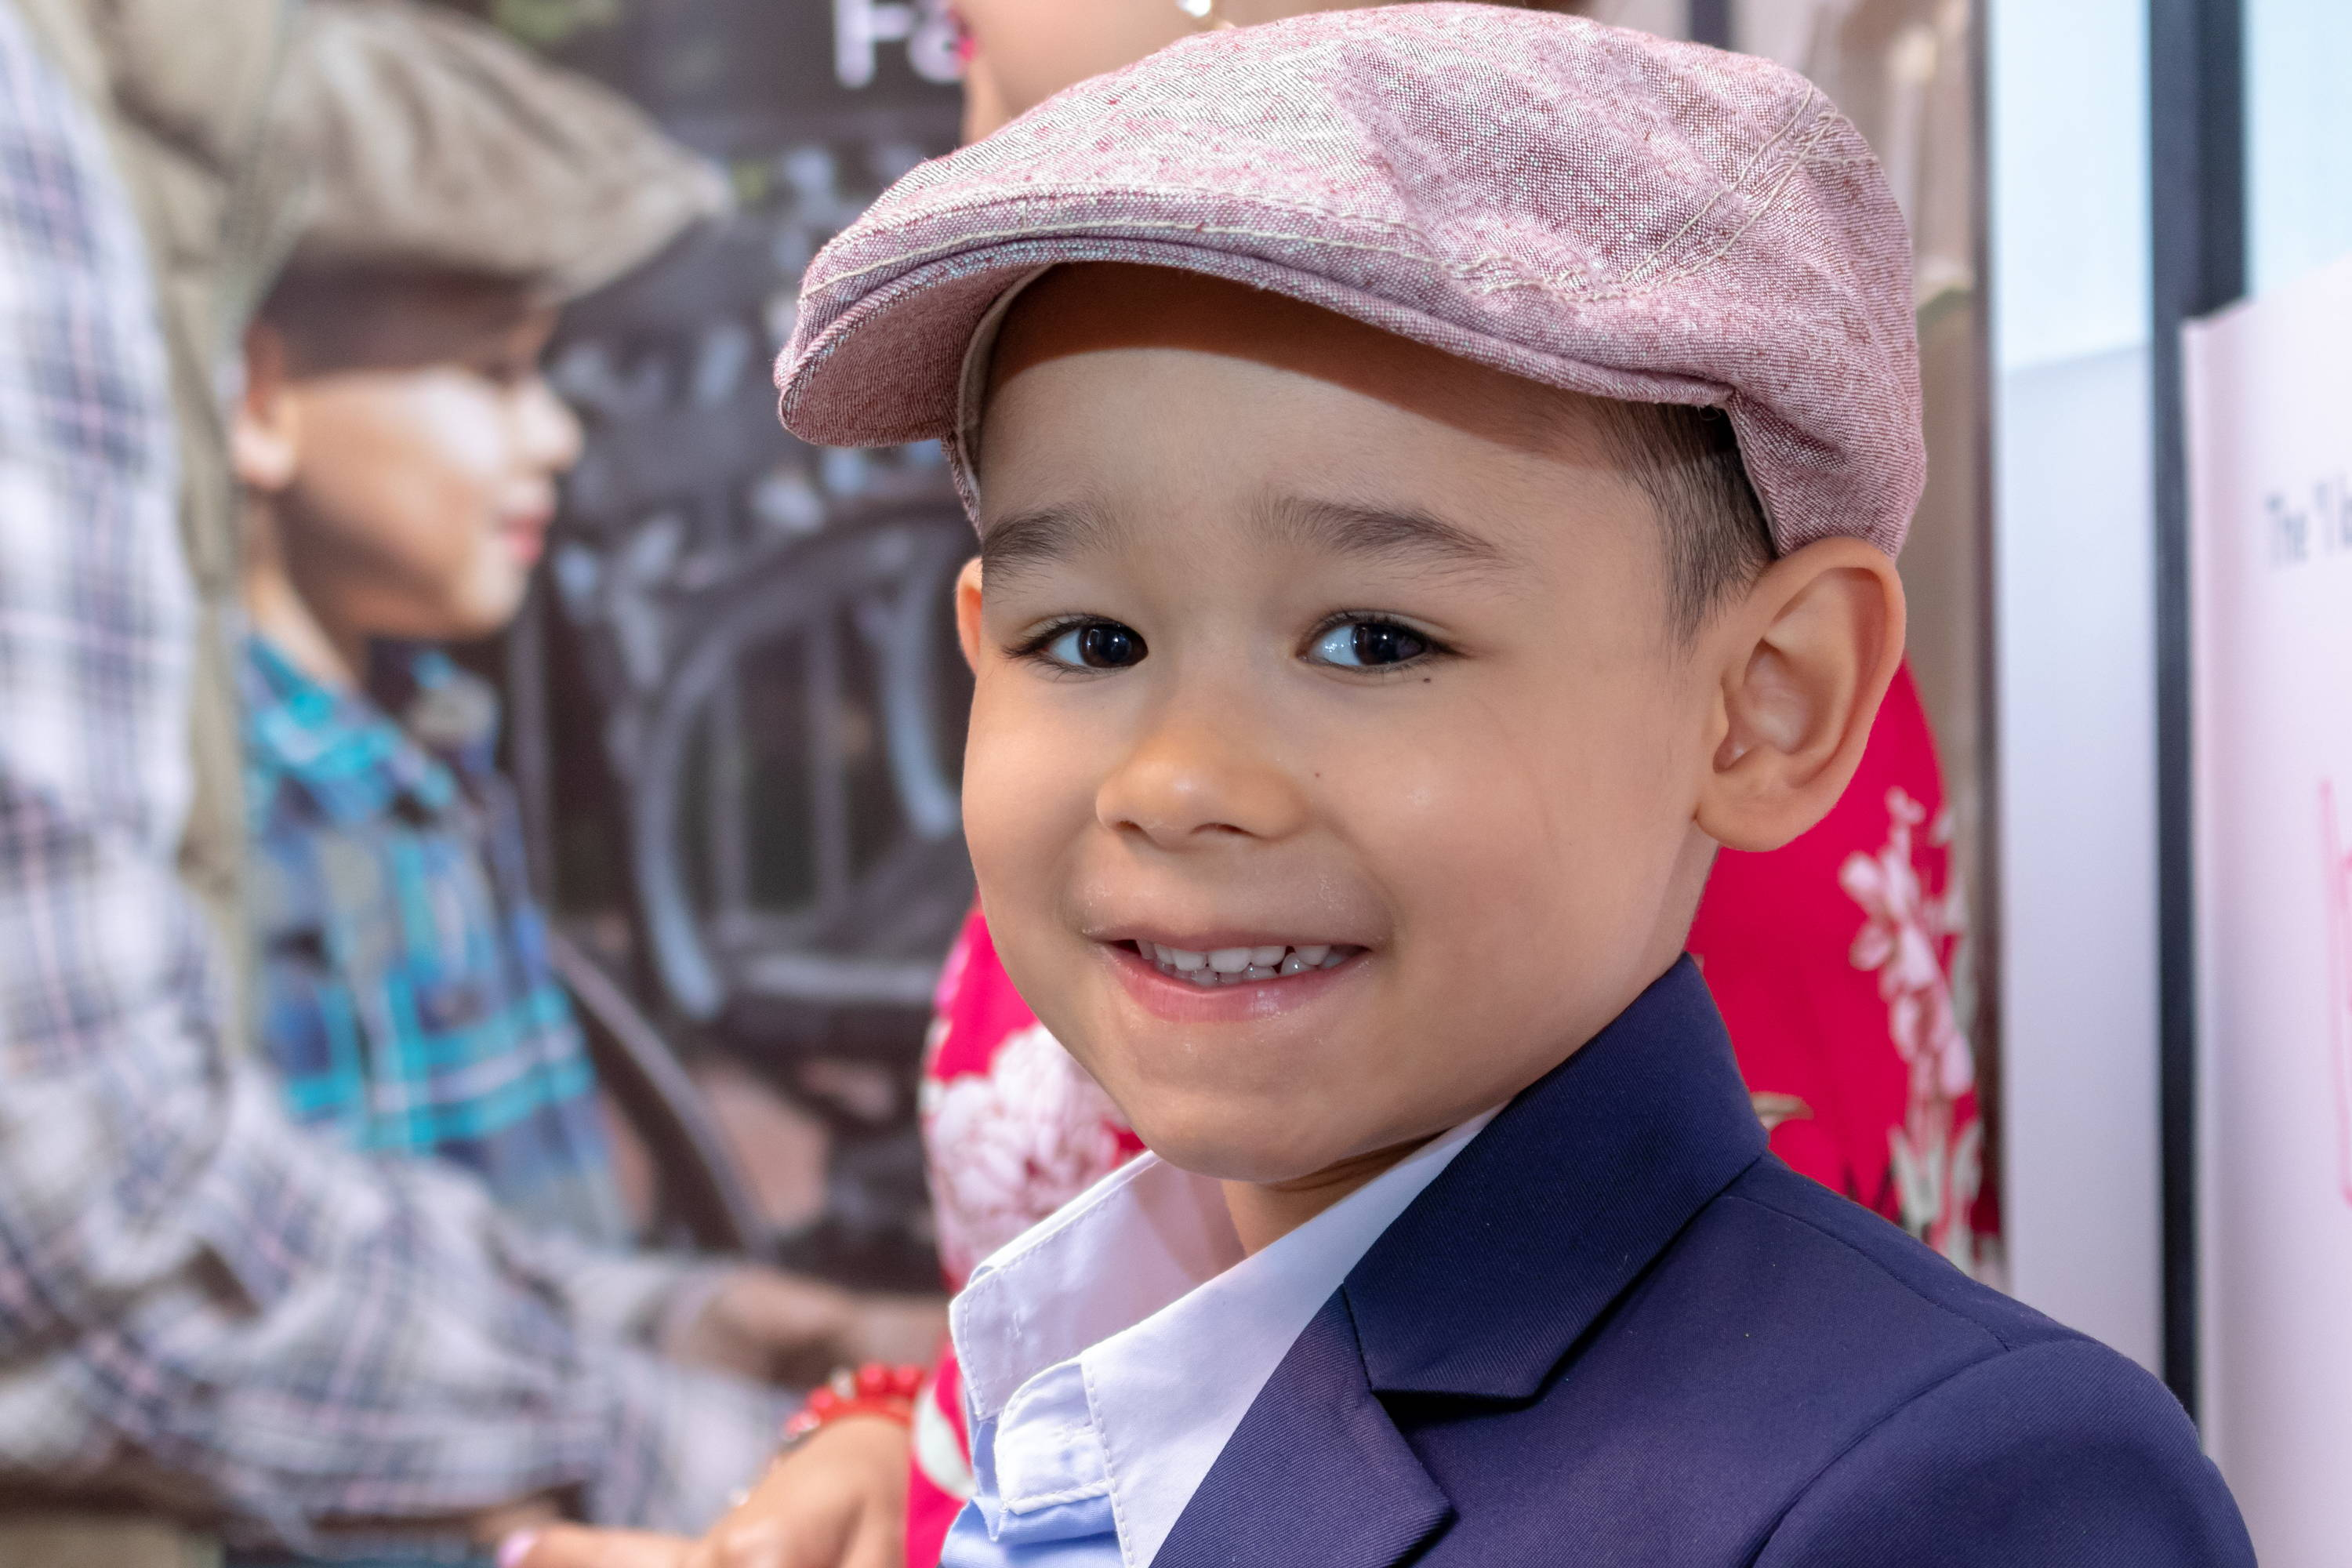 Junior Baby Hatter makes Tiny Caps for Tiny Chaps